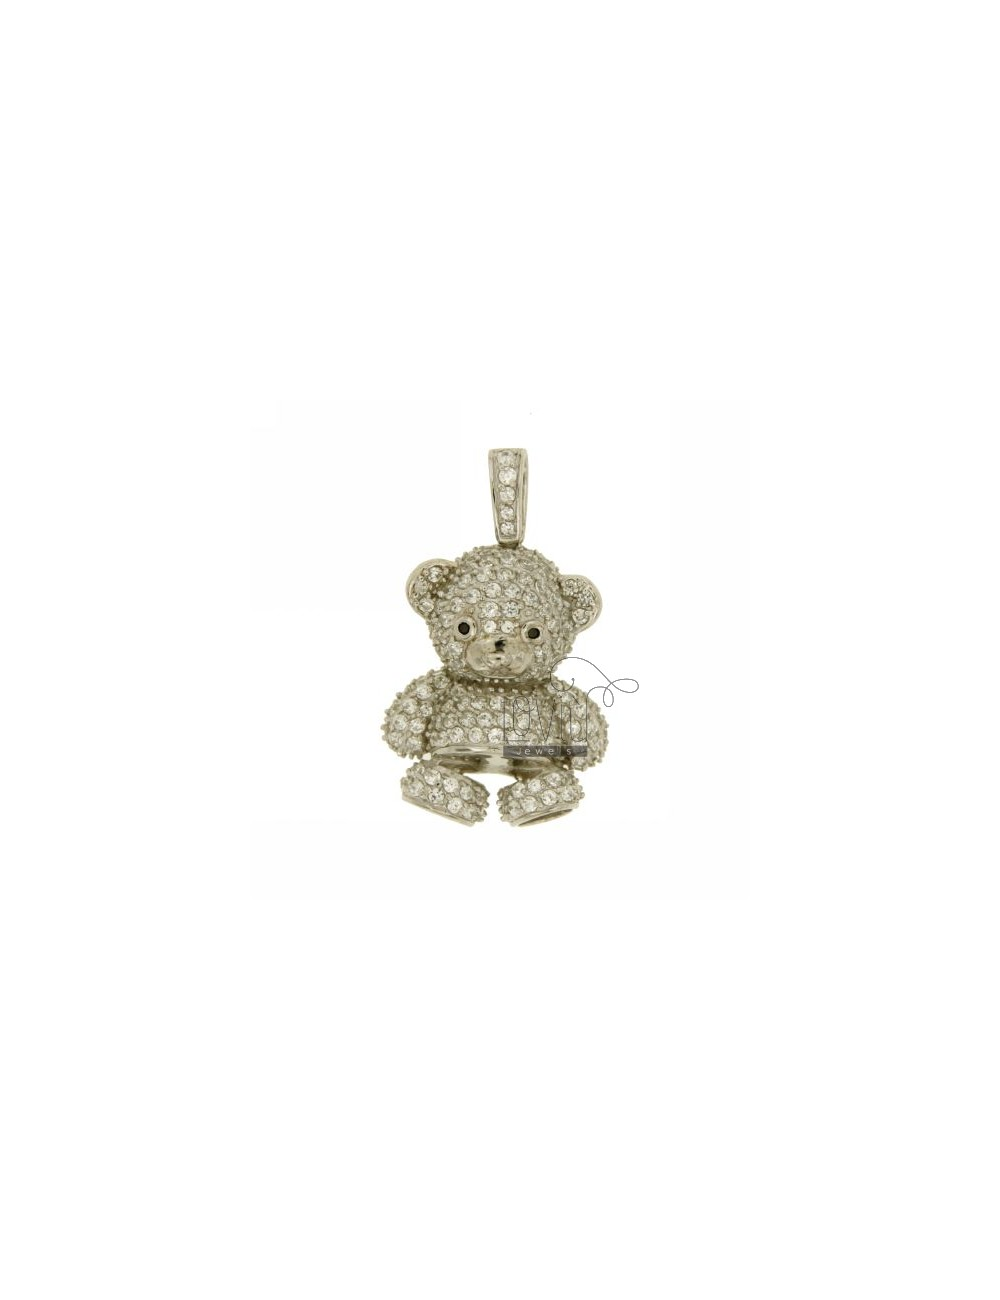 BEAR PENDANT 29x22 MM IN AG TIT 925 ‰ AND ZIRCONIA